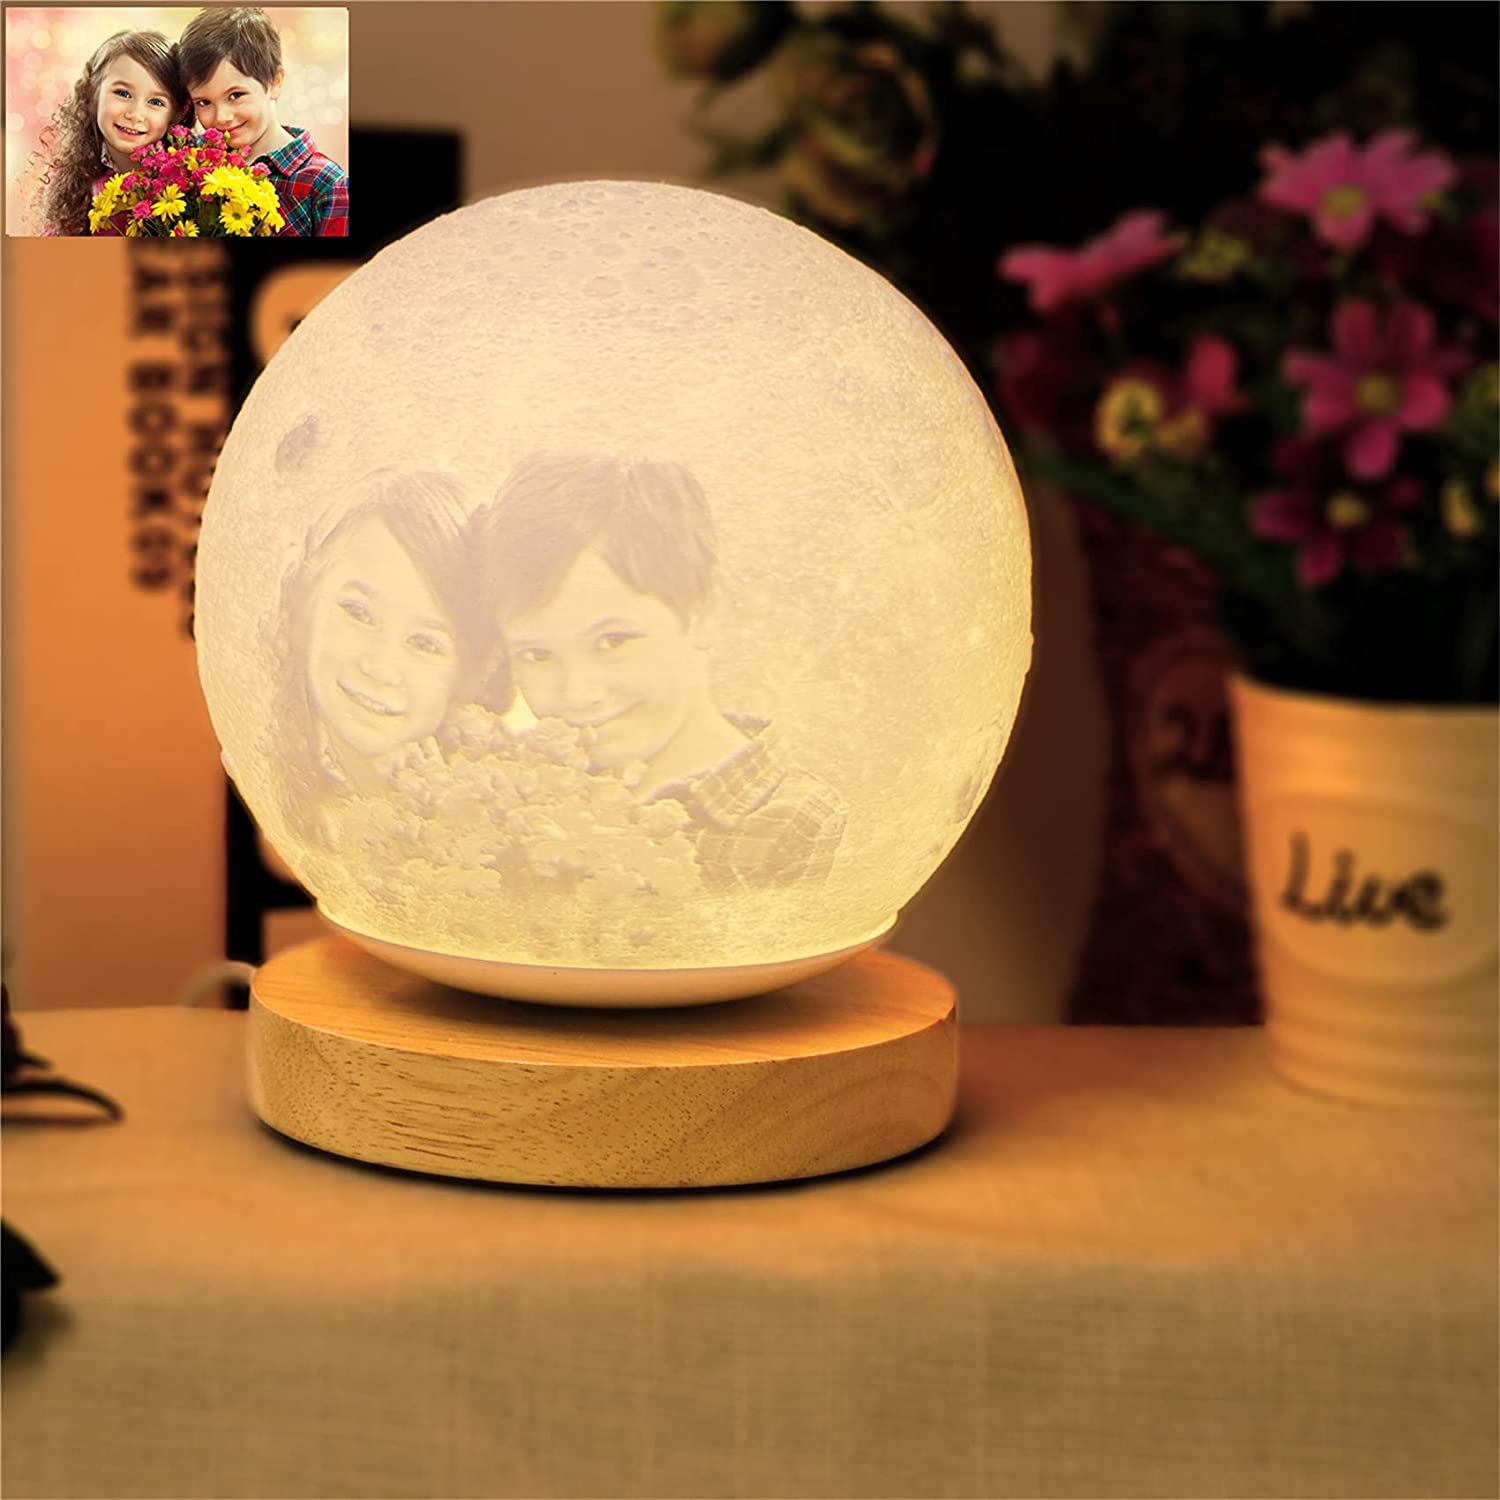 Moon Lamp Personalized Photo Customized 1 Picture with discount Reservation Engraved